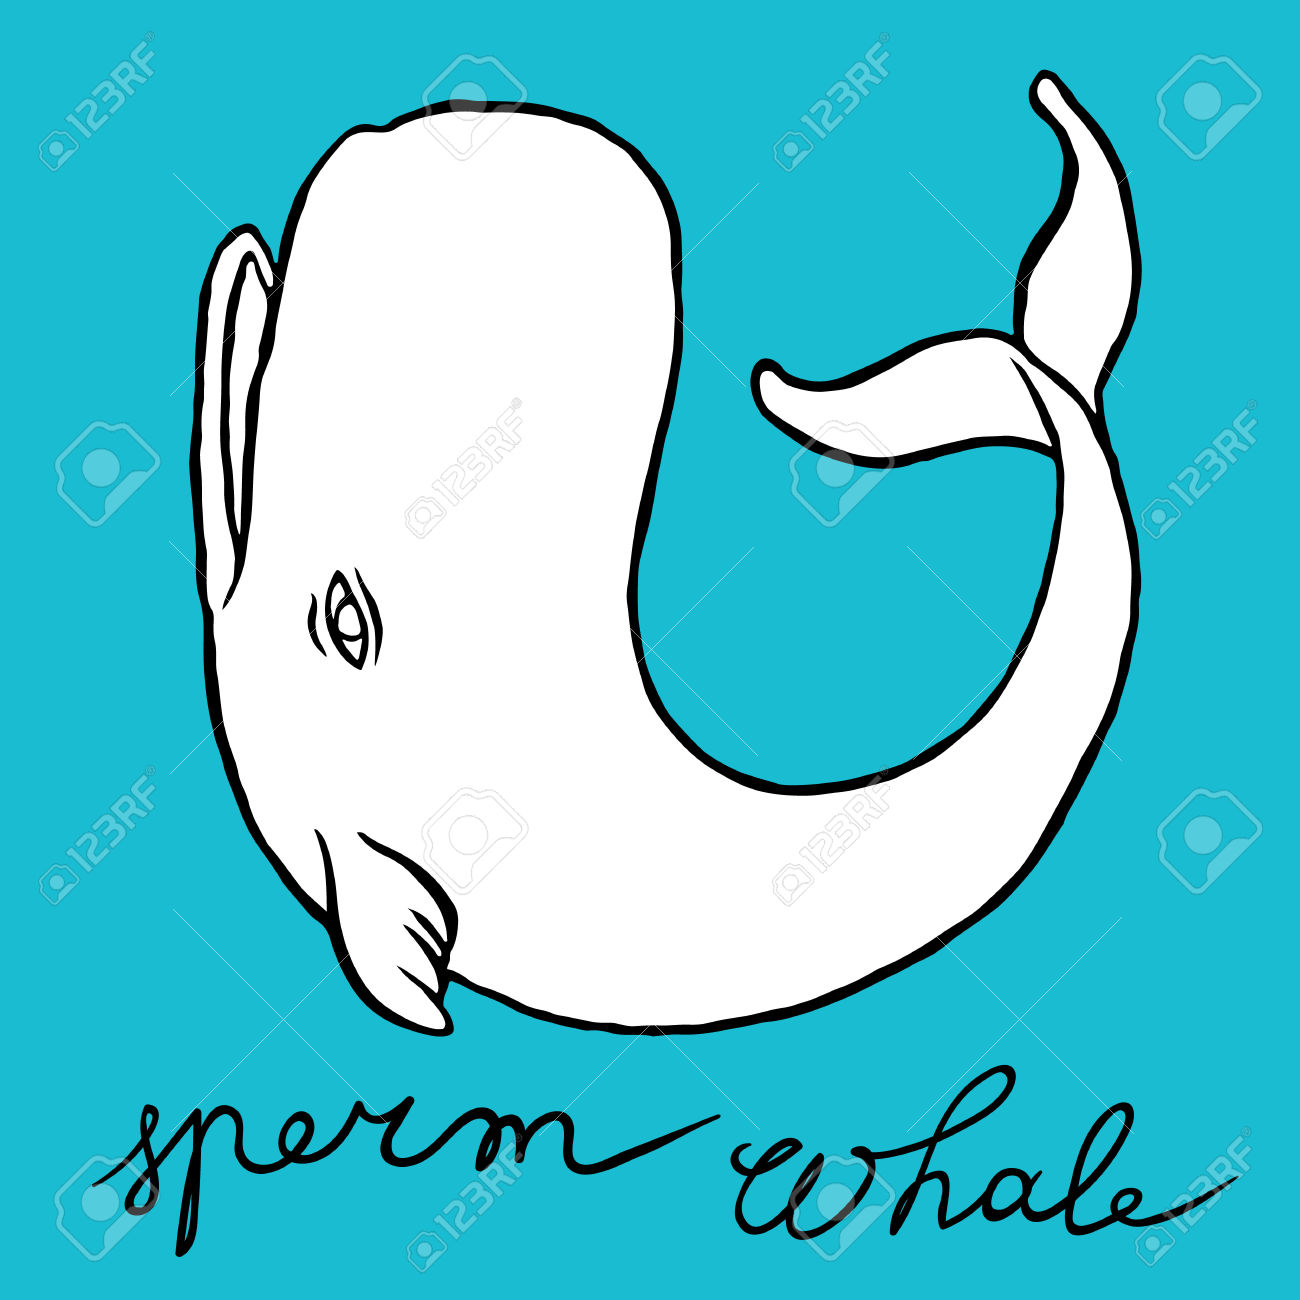 Cachalot Or Sperm Whale.